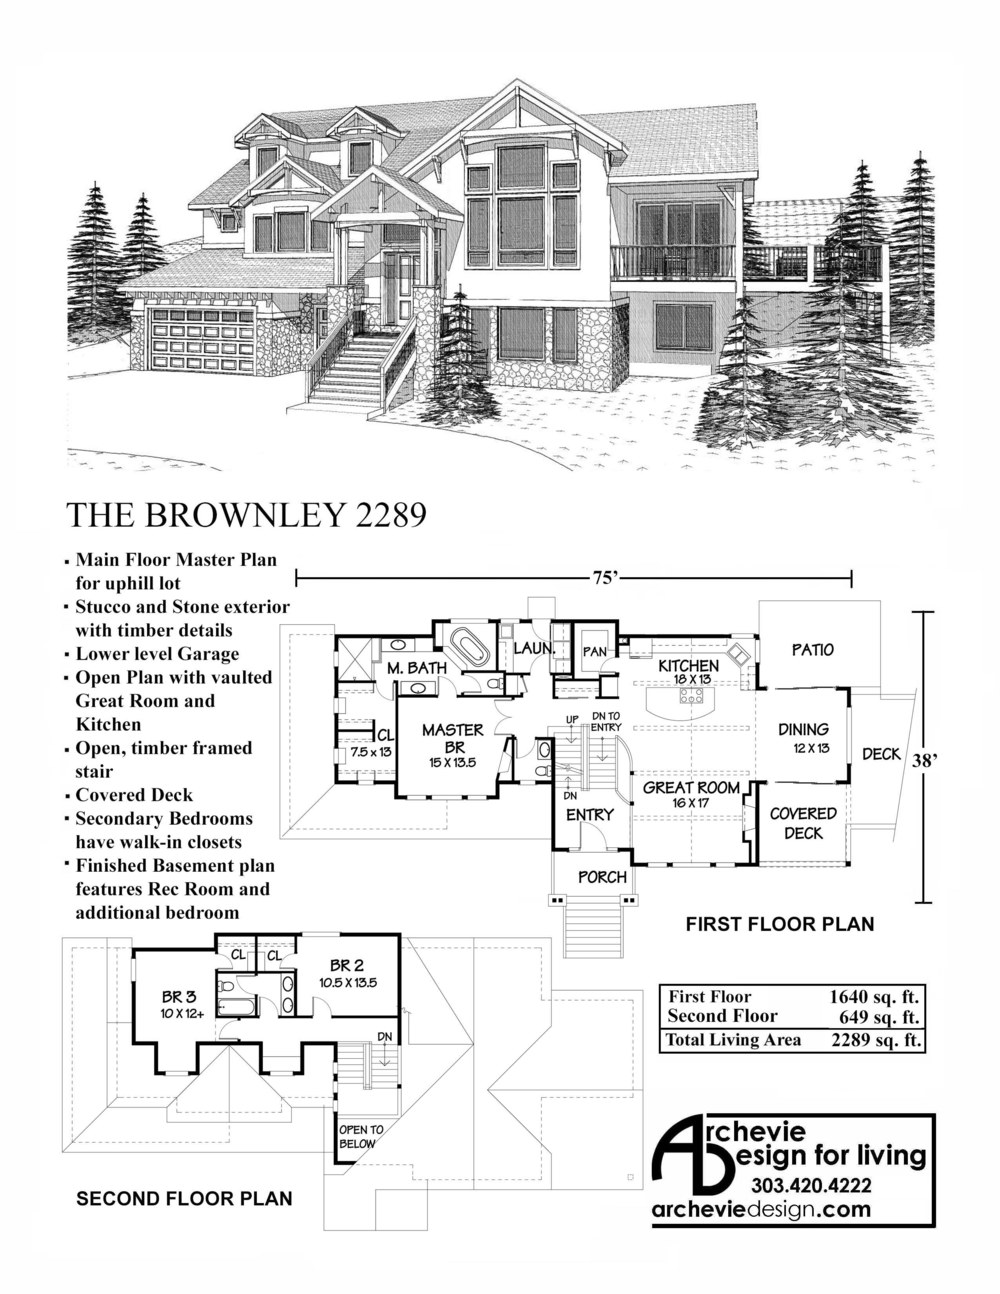 BROWNLEY2289.jpg